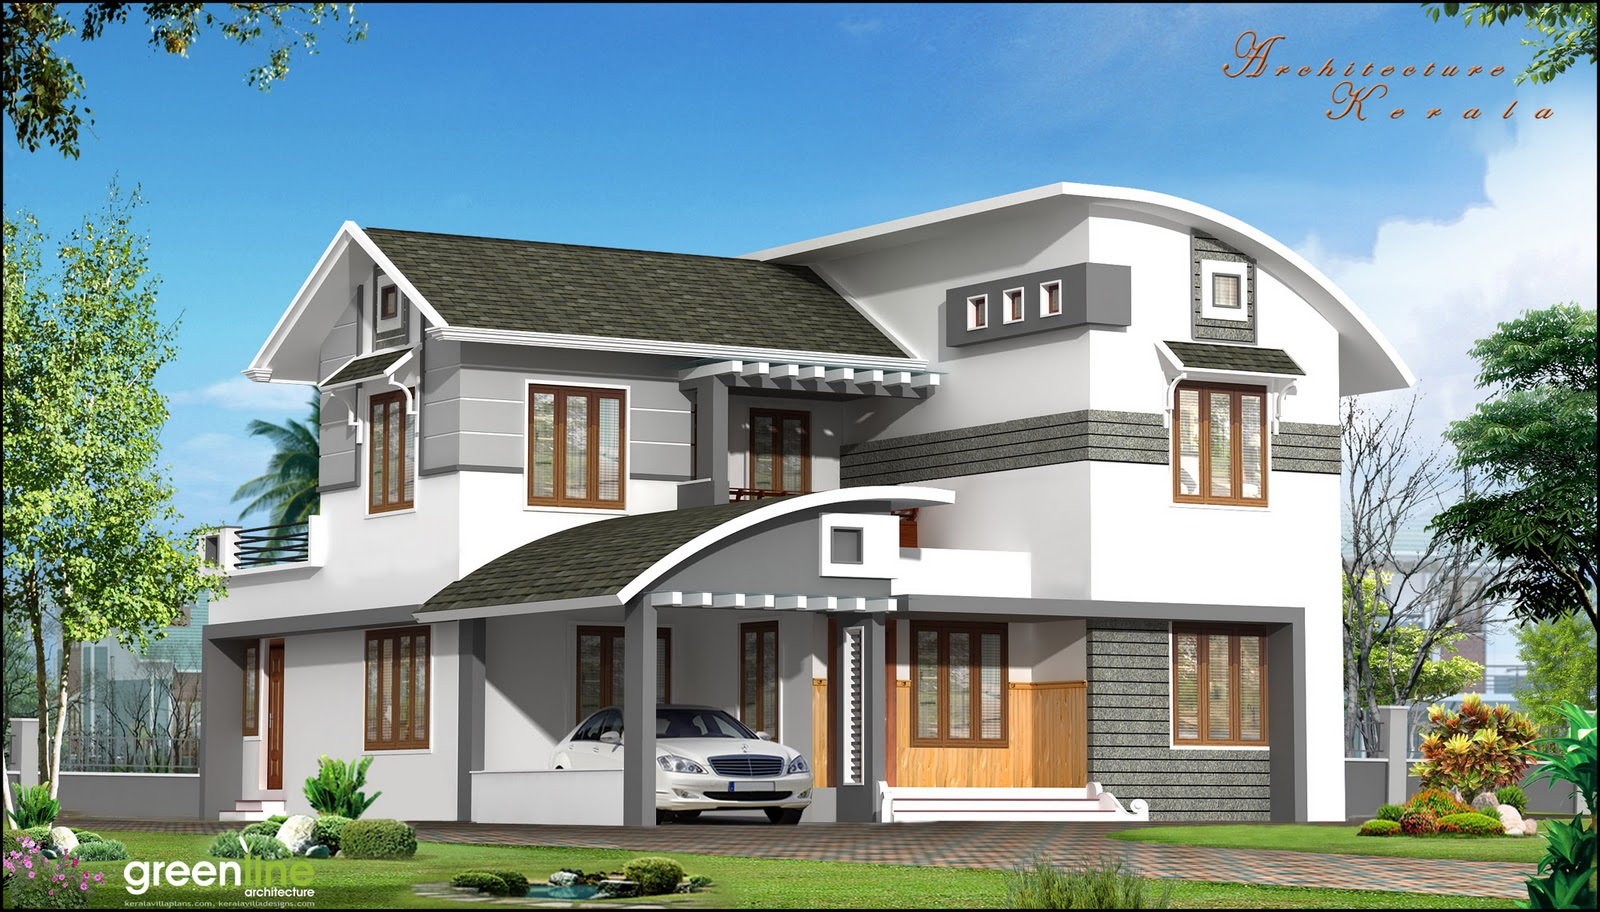 Architecture Kerala: A BEAUTIFUL HOUSE ELEVATION